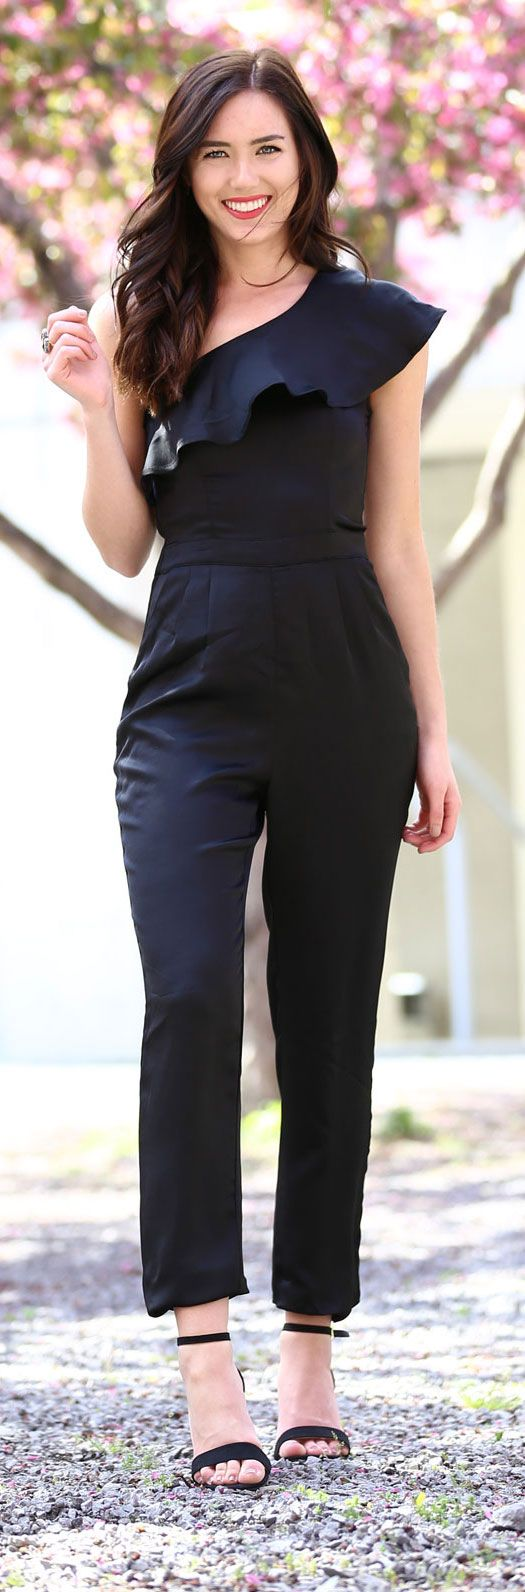 LOVE a good jumpsuit that fits perfectly and is so flattering! The one shoulder ruffle detail is beautiful on all body types! Perfect outfit for wedding guest! From Dynamite Clothing and less than $60! By Fashion blogger Marie's Bazaar